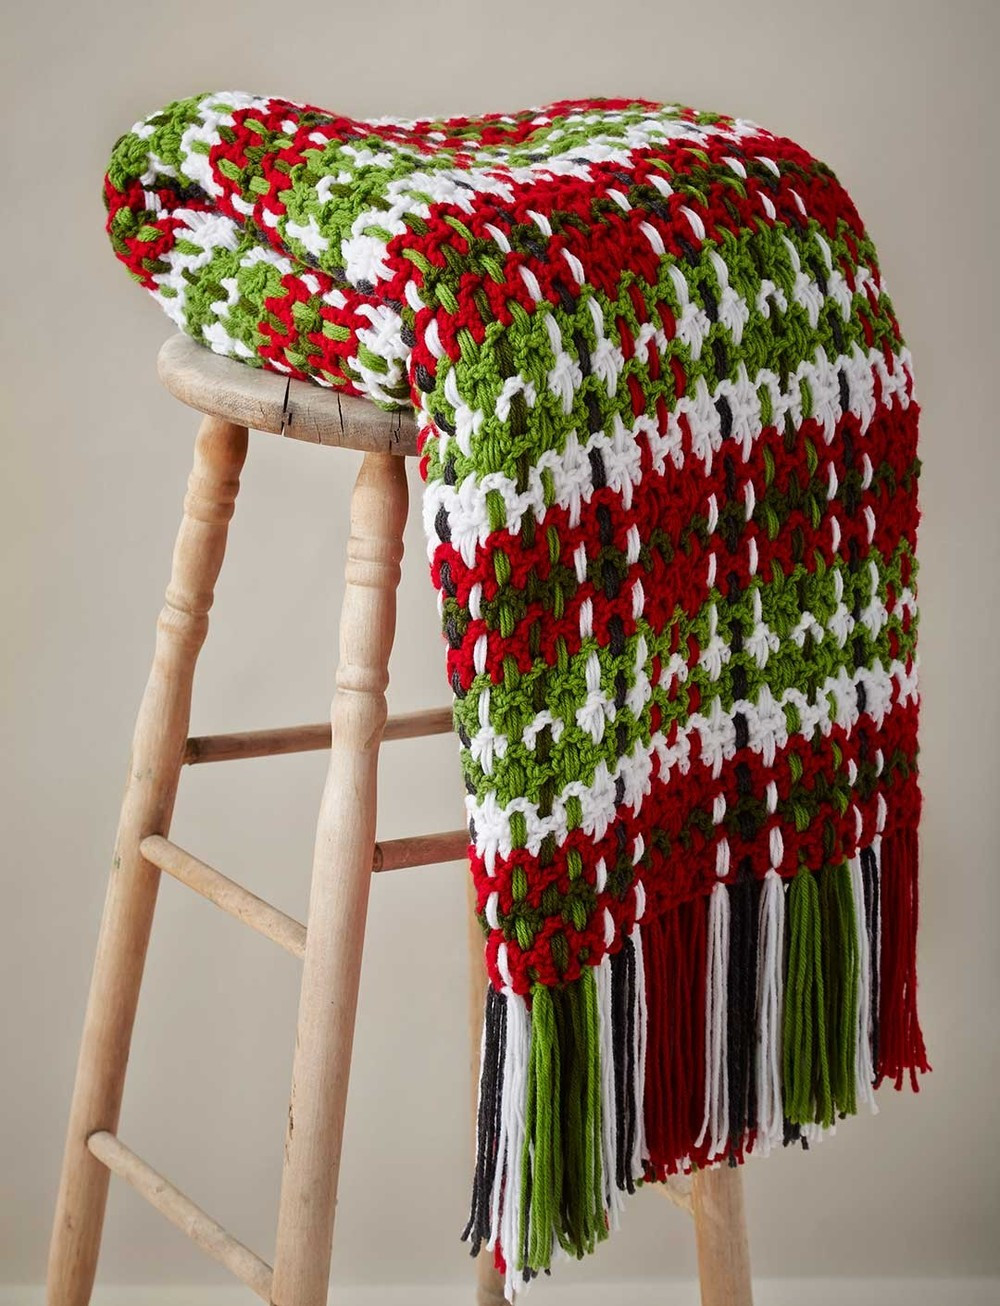 Free Crochet Blanket Patterns Luxury Contemporary Plaid Crochet Afghan Pattern Of Superb 44 Models Free Crochet Blanket Patterns